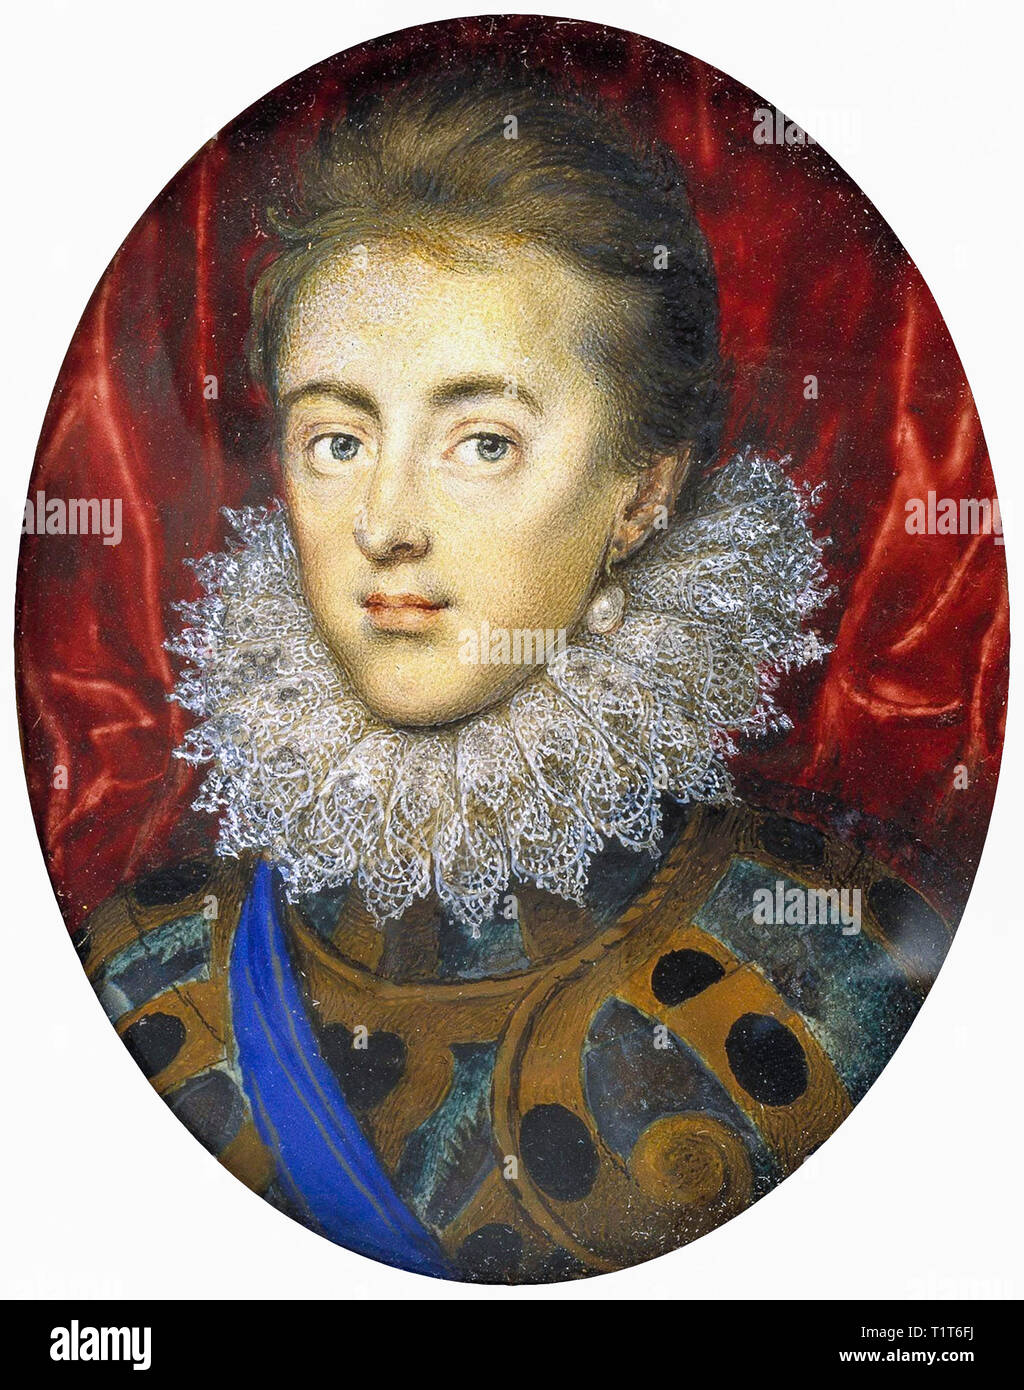 Charles, Prince of Wales (later Charles I) as a young man in 1615, Isaac Oliver - Stock Image